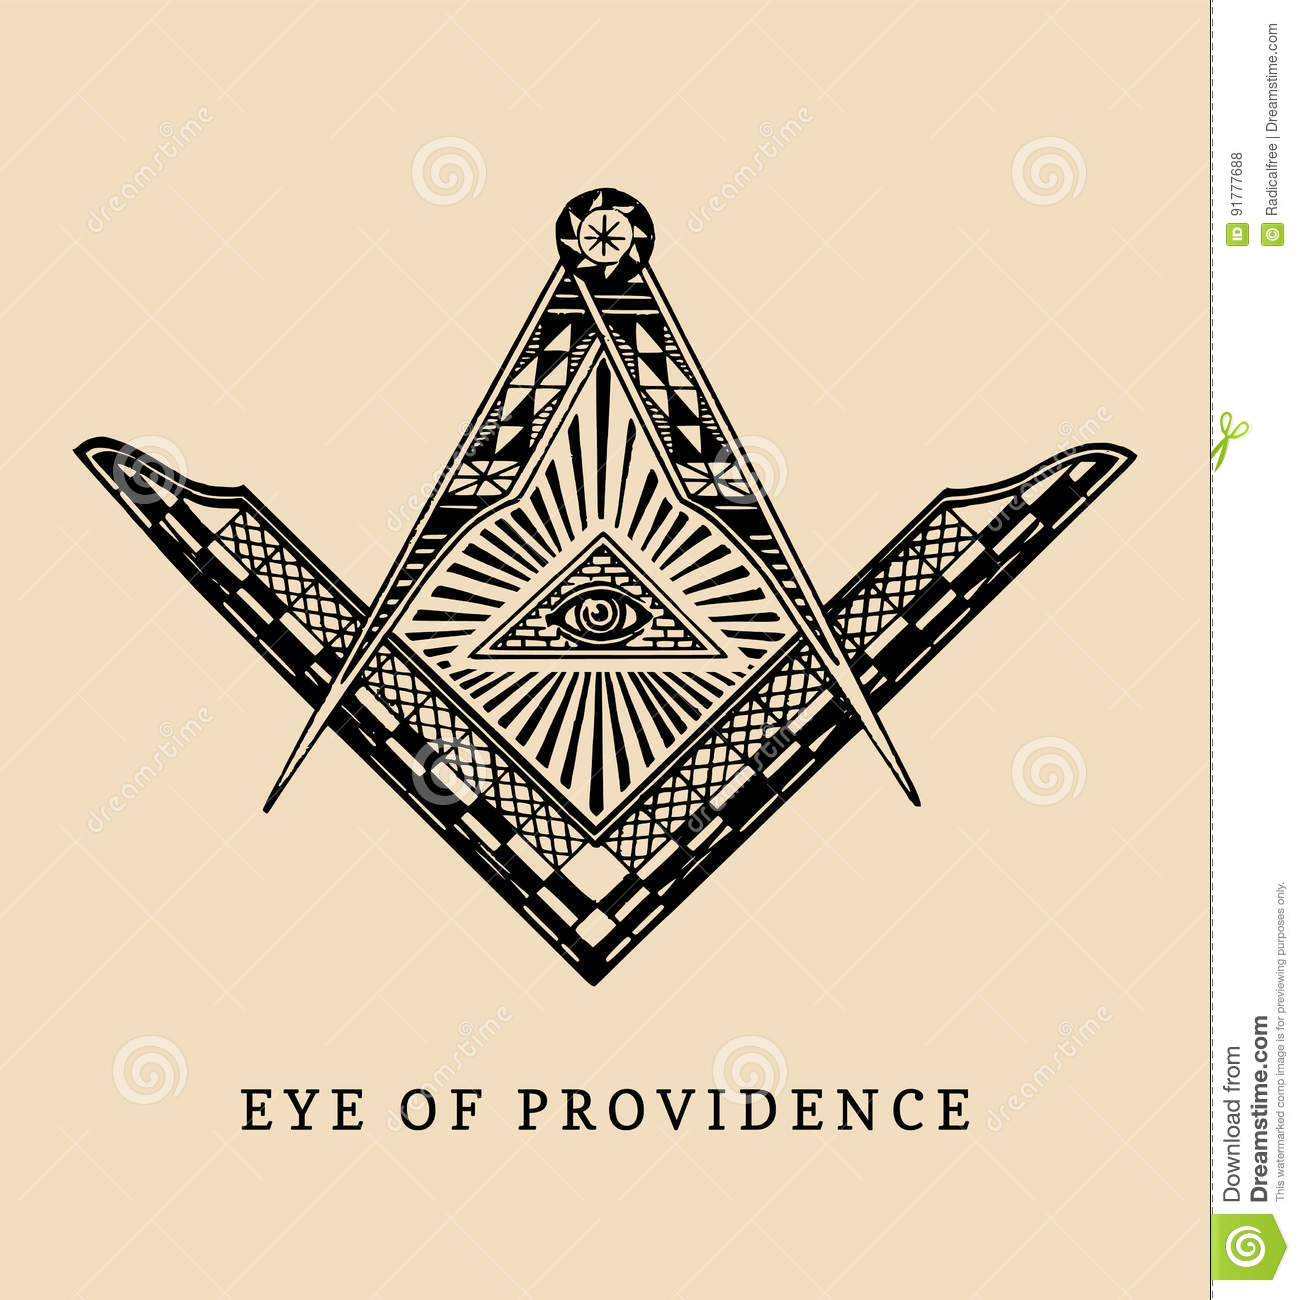 All seeing eye of providence masonic square and compass symbols all seeing eye of providence masonic square and compass symbols freemasonry pyramid engraving m4hsunfo